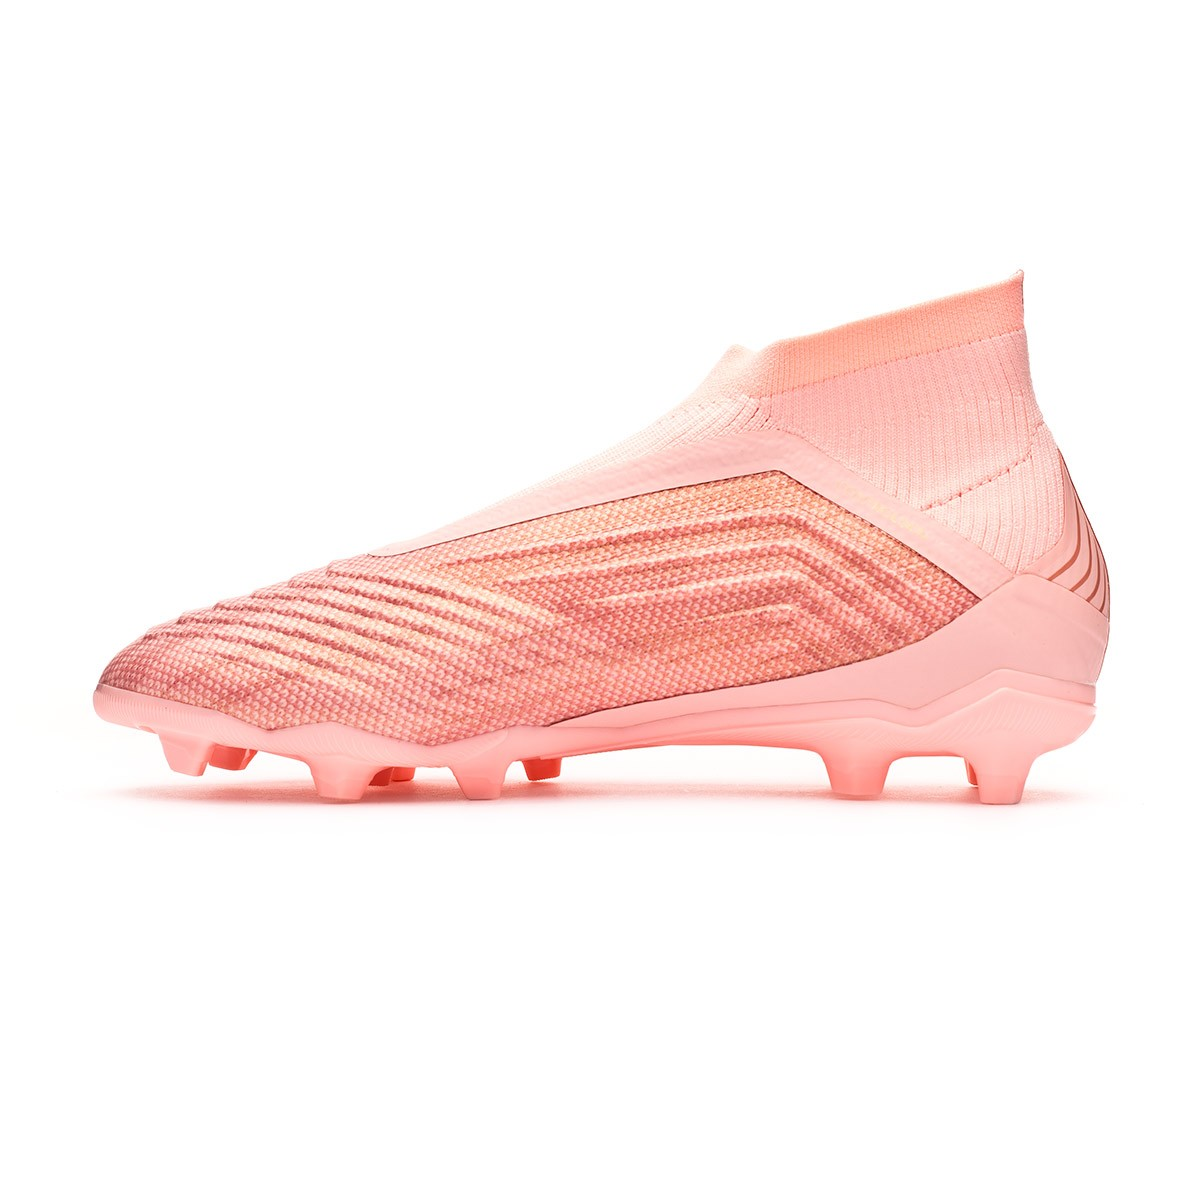 best sneakers a0f81 ea610 Boot adidas Kids Predator 18+ FG Clear orange-Trace pink - Tienda de fútbol  Fútbol Emotion